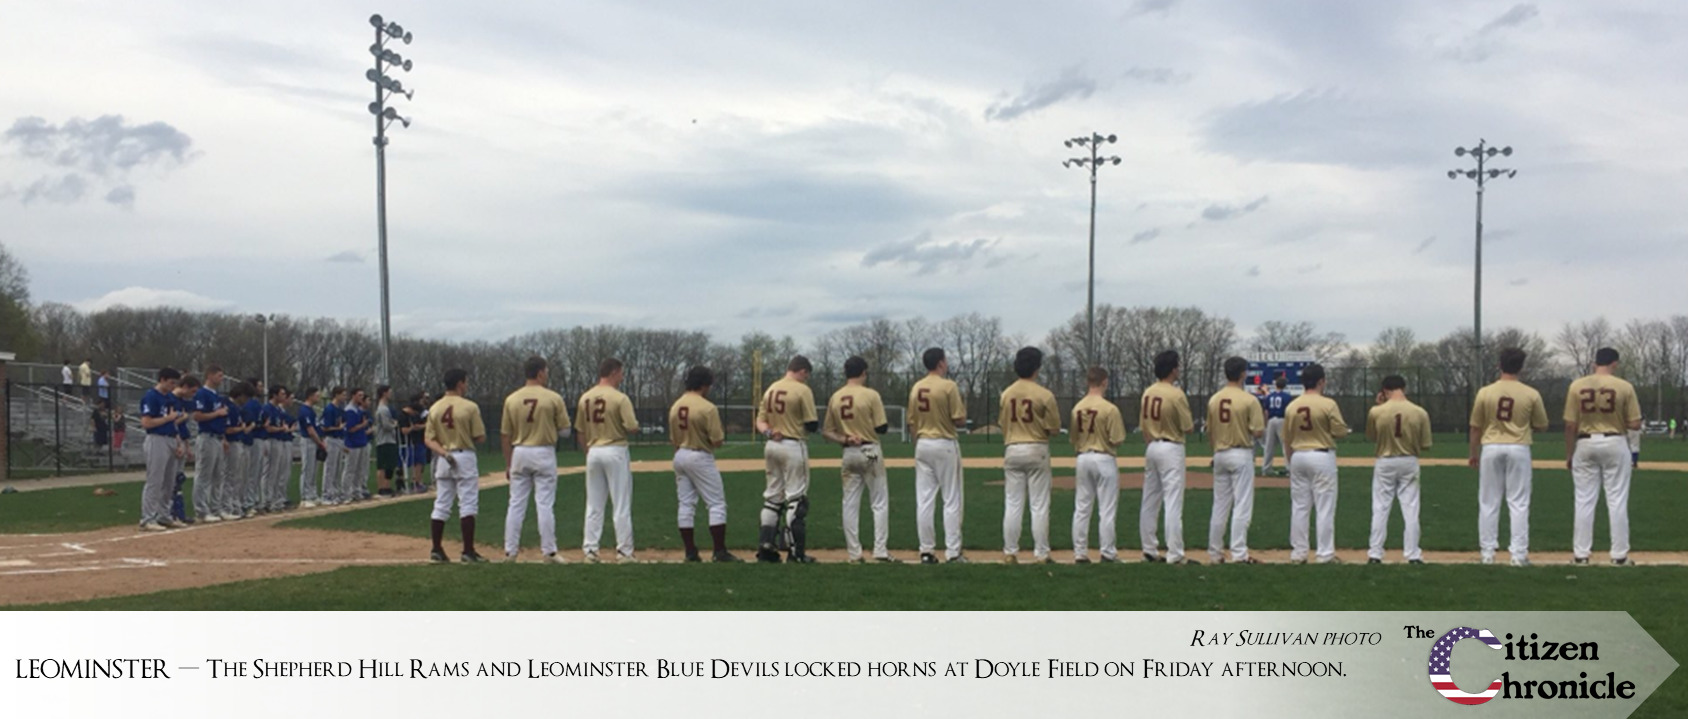 Baseball: Shepherd Hill 0, Leominster 16